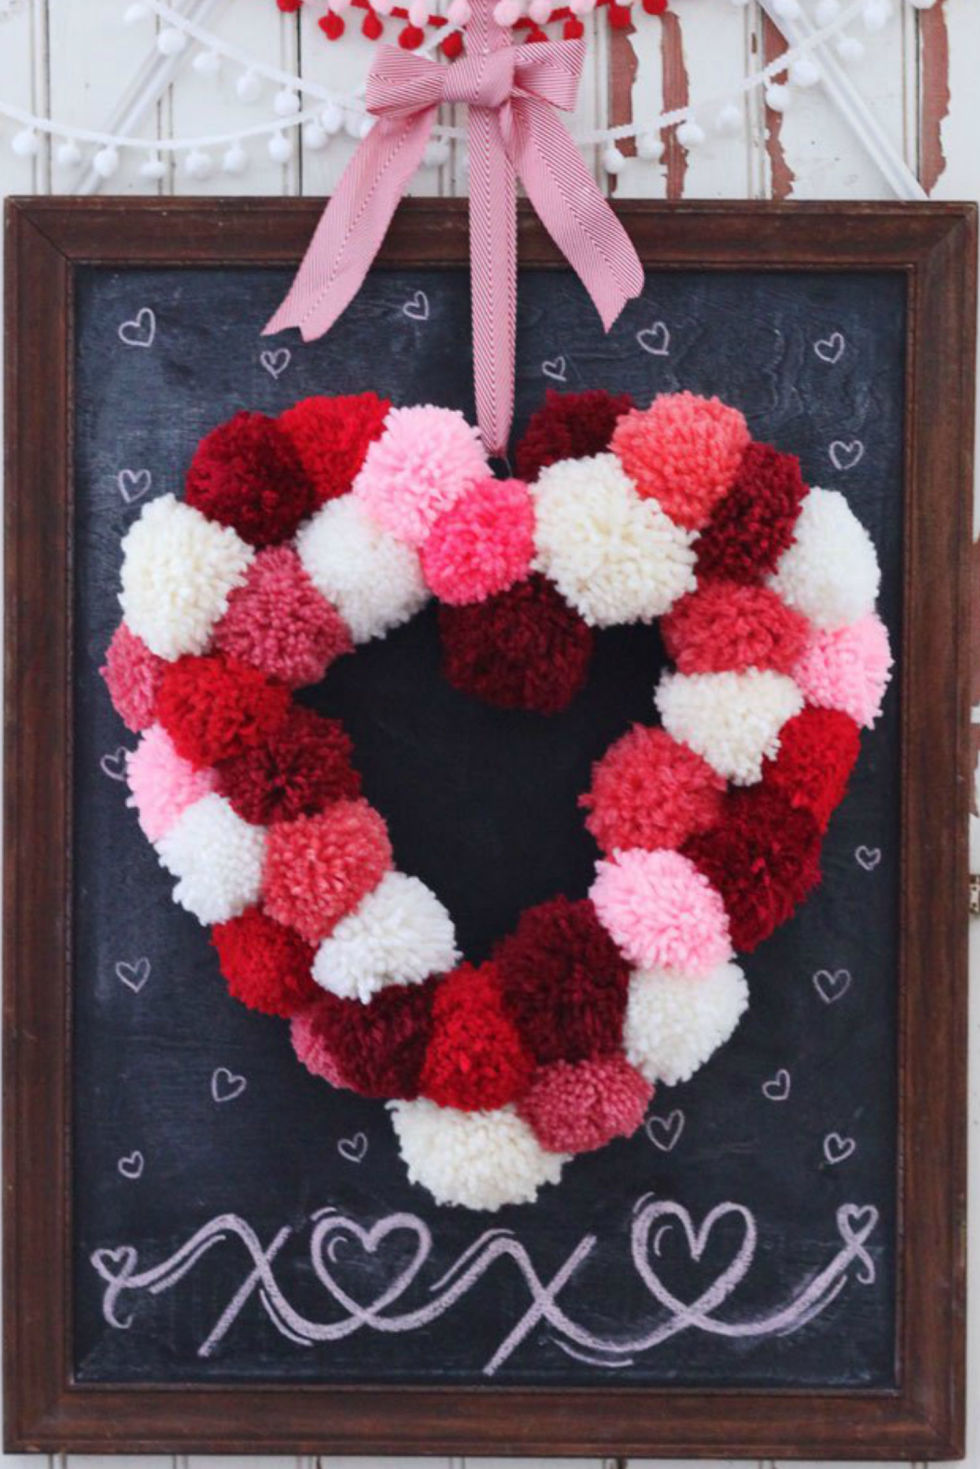 15 diy valentines day decorations easy valentines day decor ideas - Valentine Decorations To Make